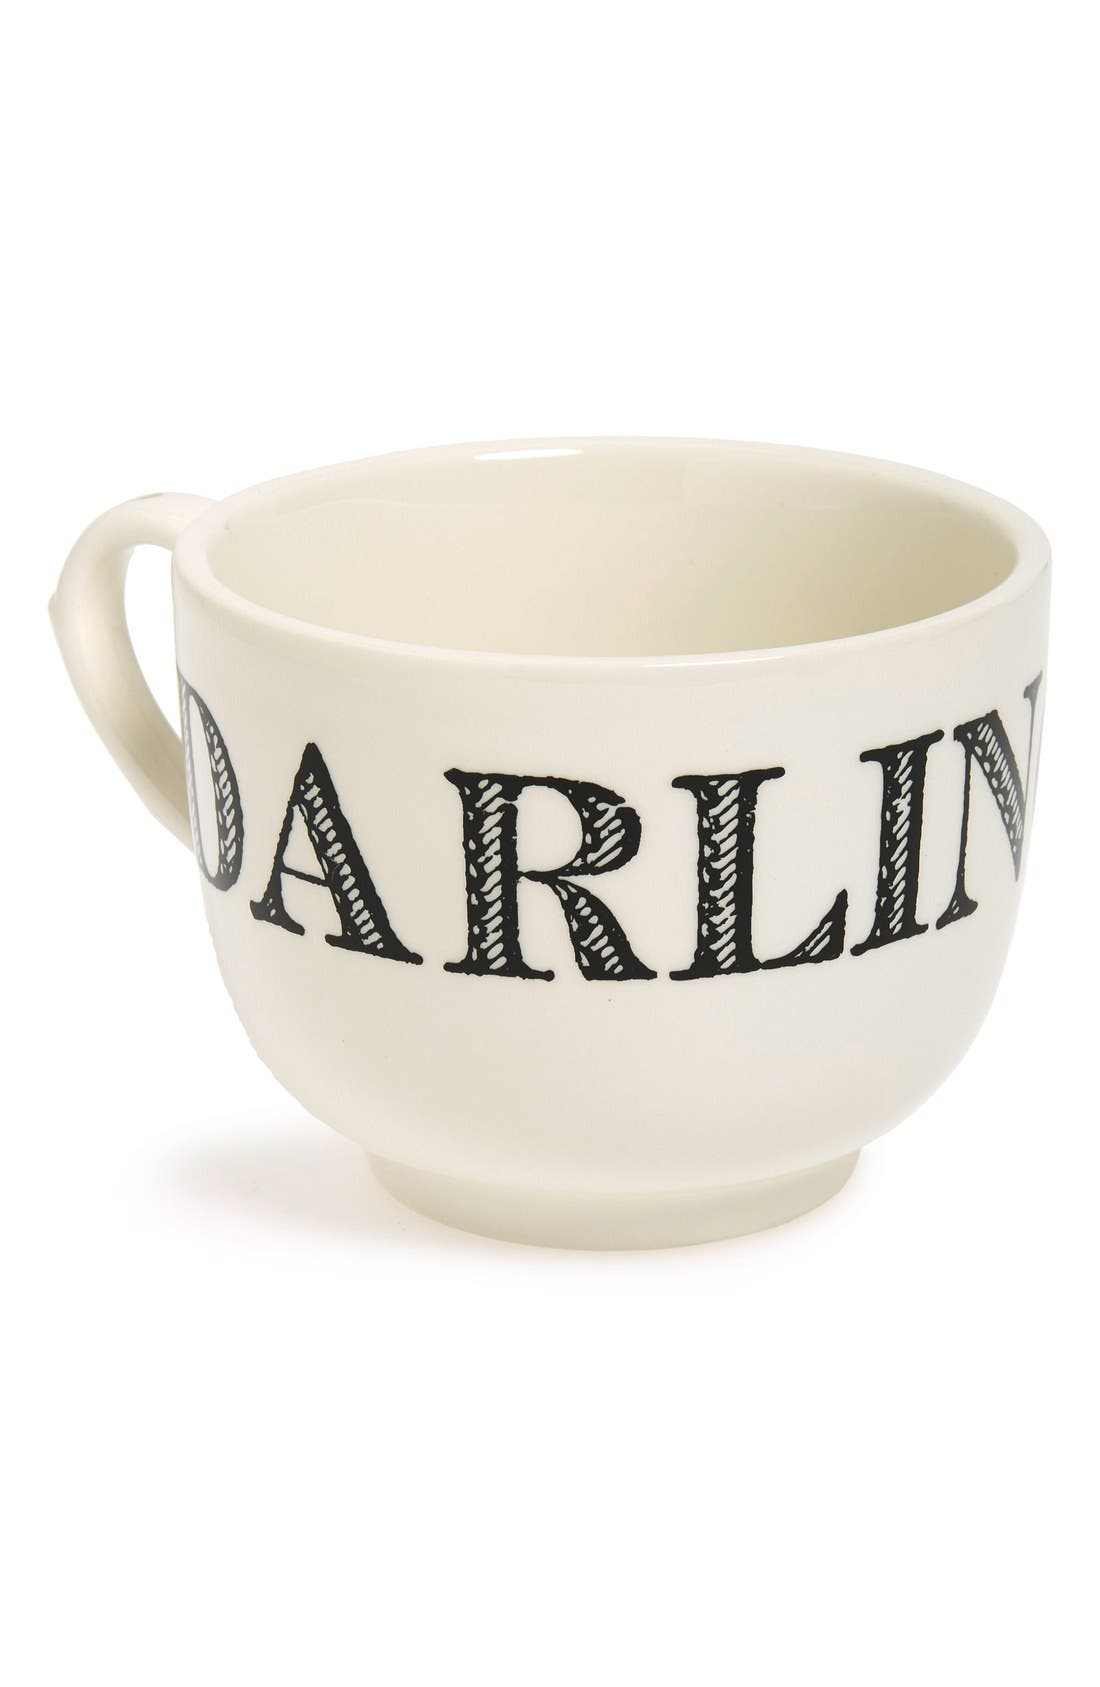 Alternate Image 1 Selected - Sir Madam 'Grand Cup - Darling' Porcelain Coffee Mug